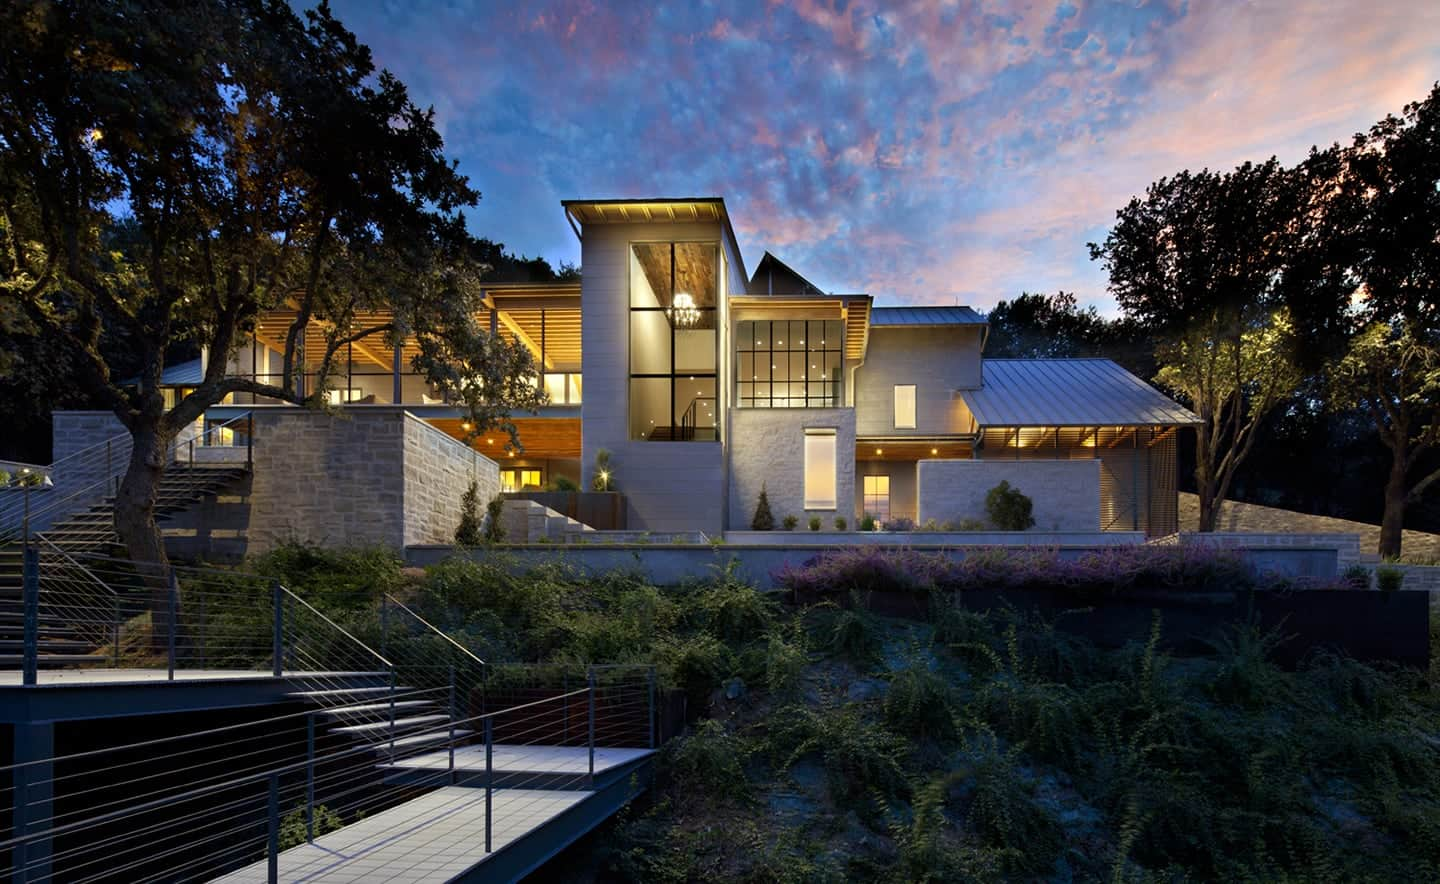 Exterior View of Horseshoe Bay Residence by Jay Corder Architect